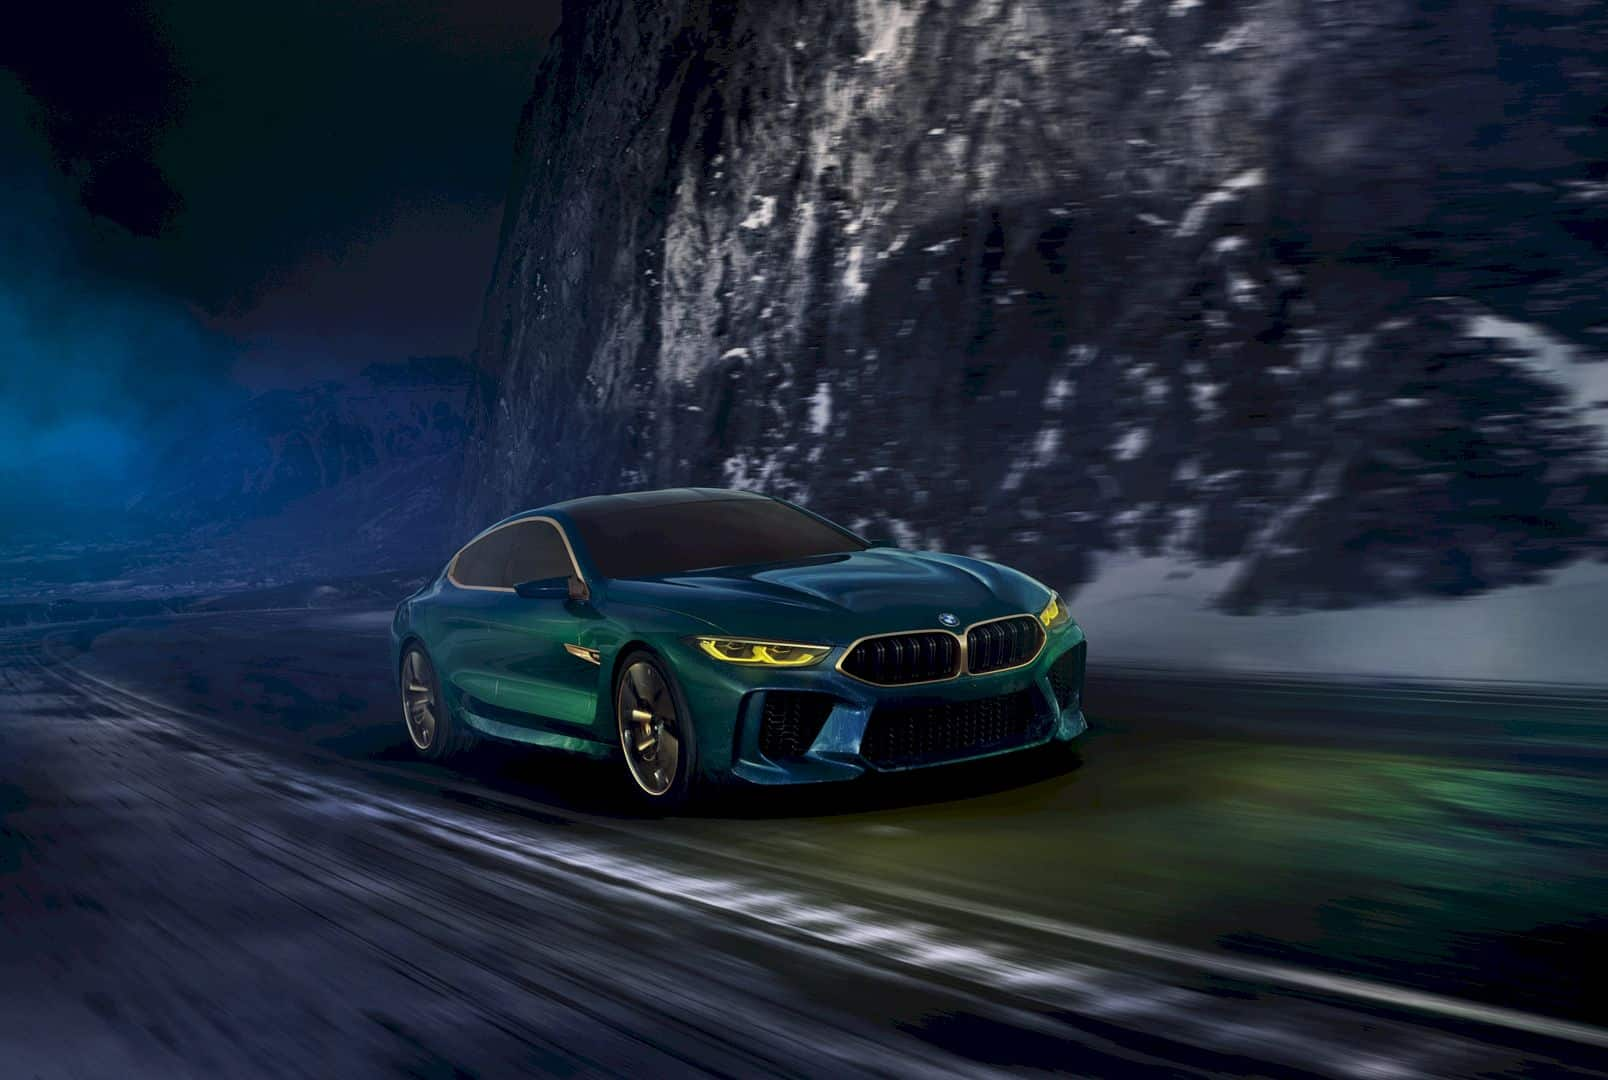 The Bmw Concept M8 Gran Coupe 7